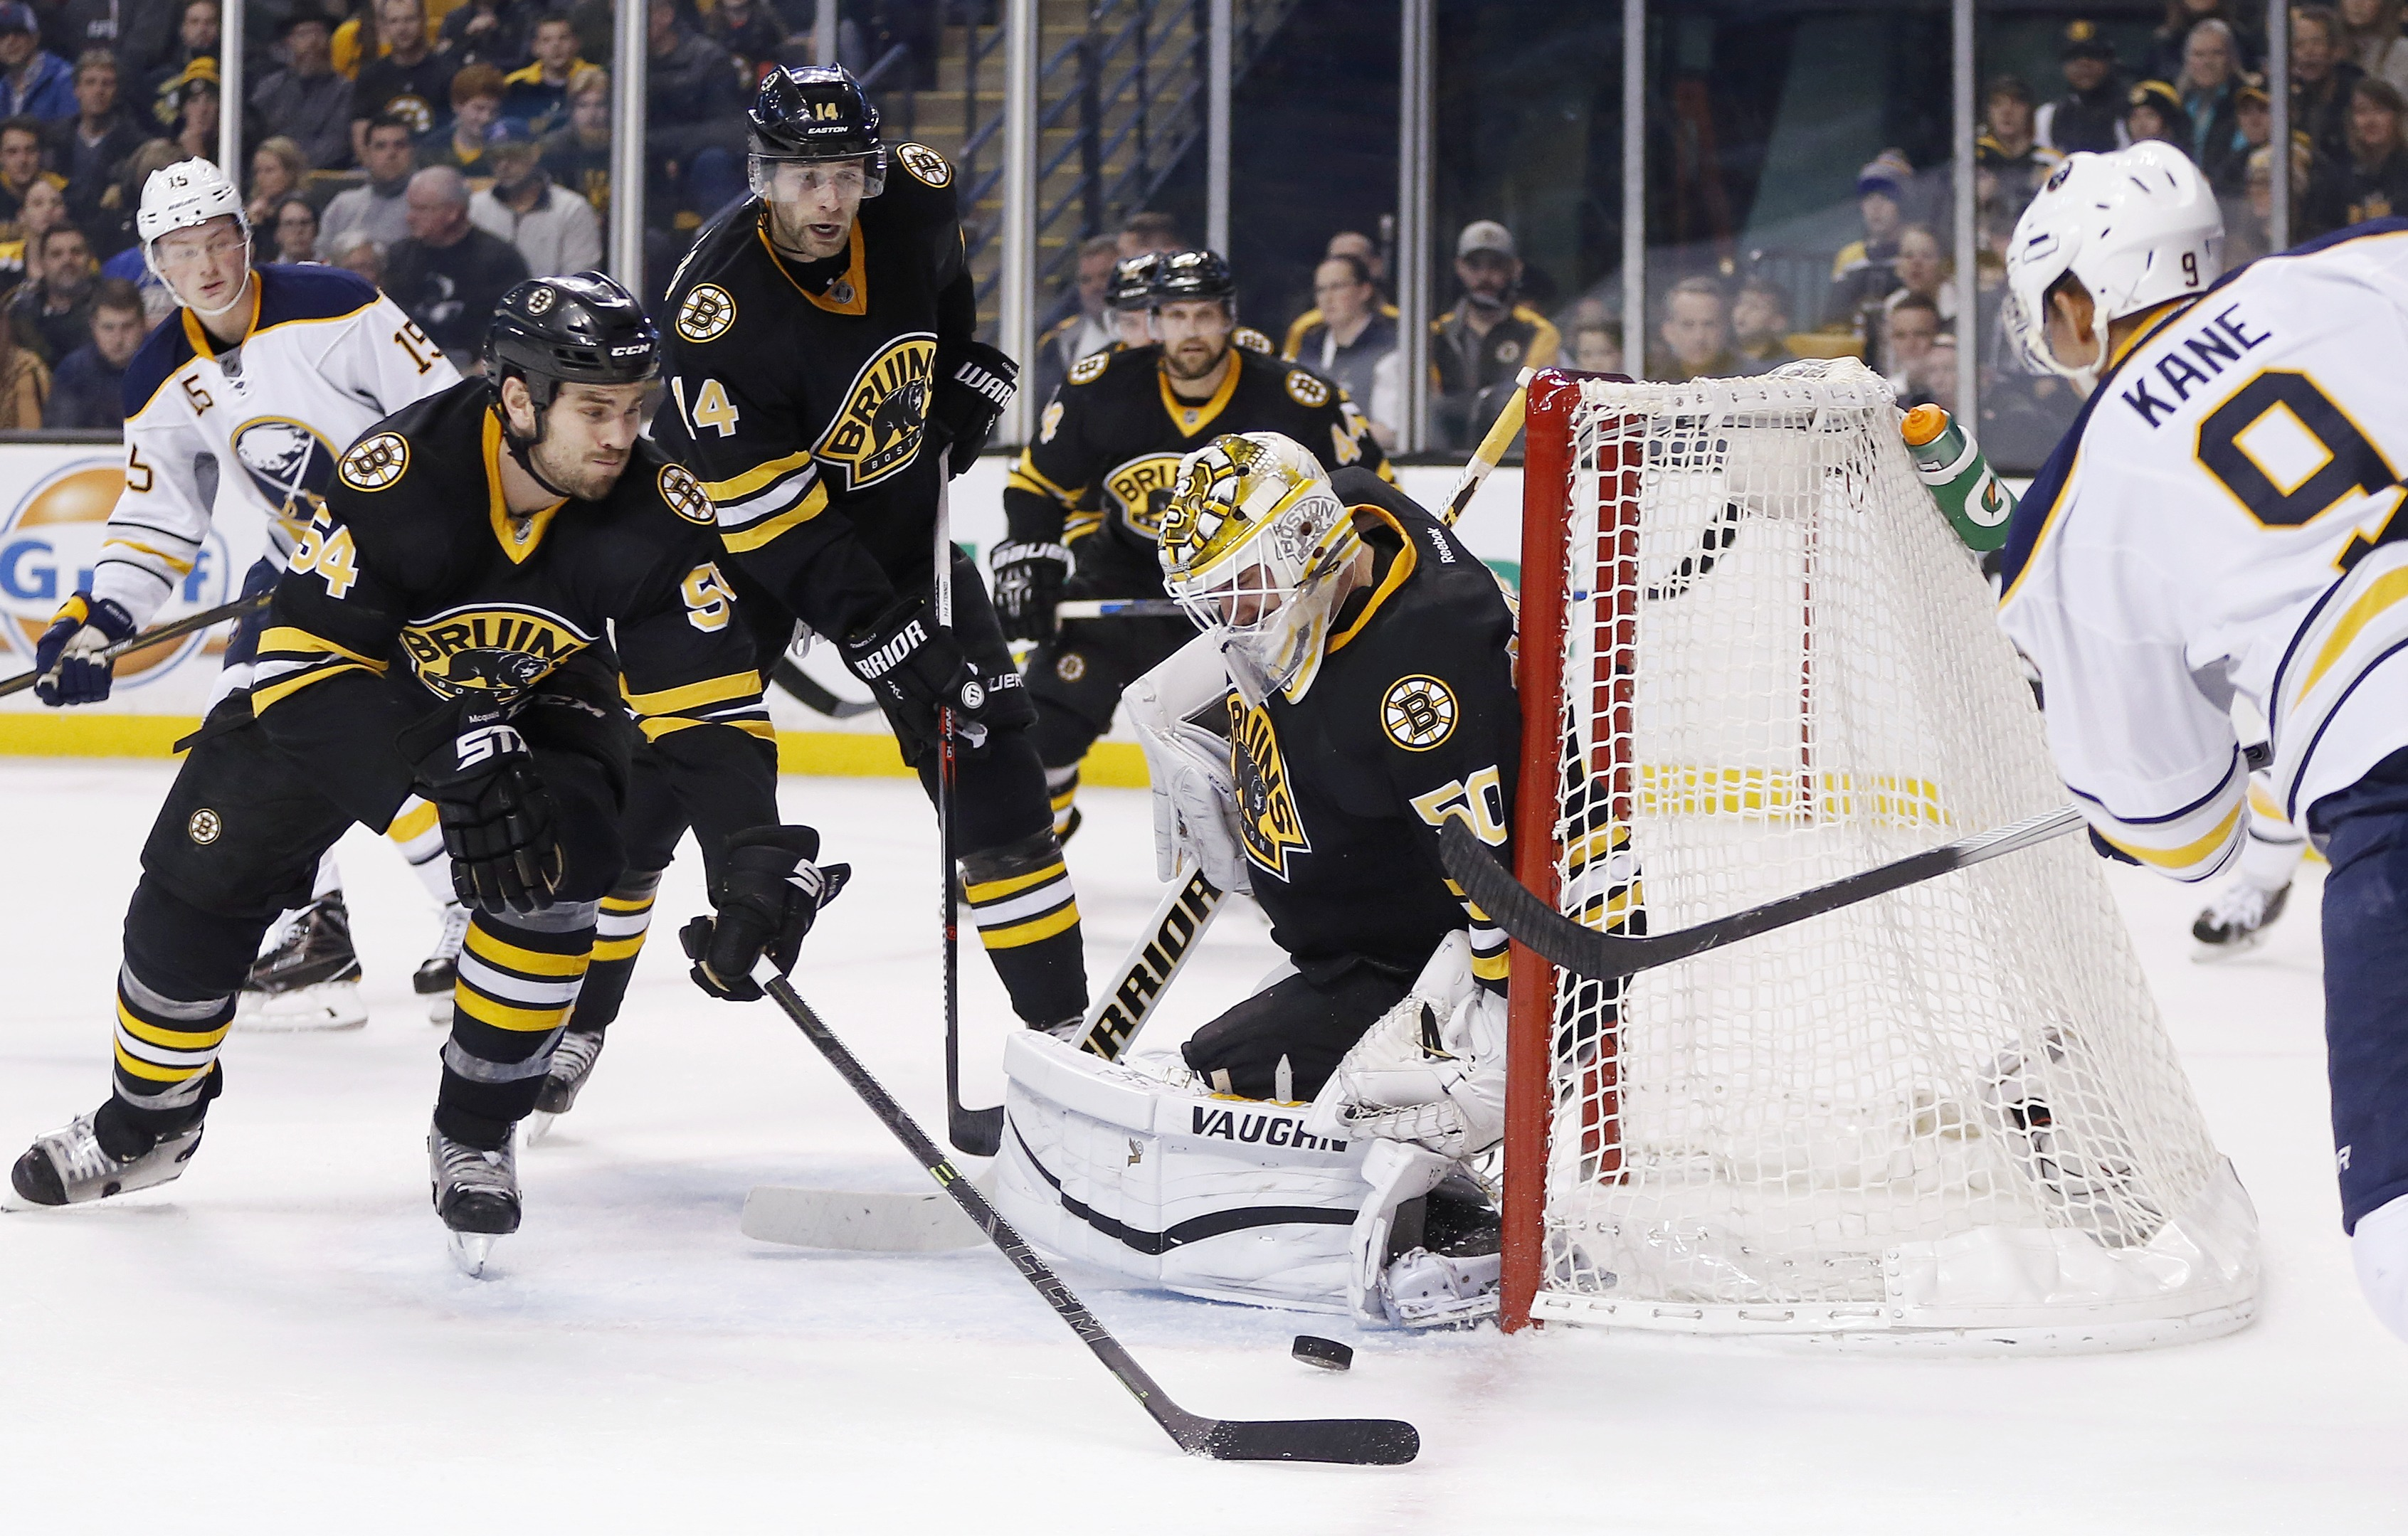 Boston Bruins' Jonas Gustavsson (50) blocks a shot by Buffalo Sabres' Evander Kane (9) during the first period of an NHL hockey game in Boston, Saturday, Dec. 26, 2015. (AP Photo/Michael Dwyer)